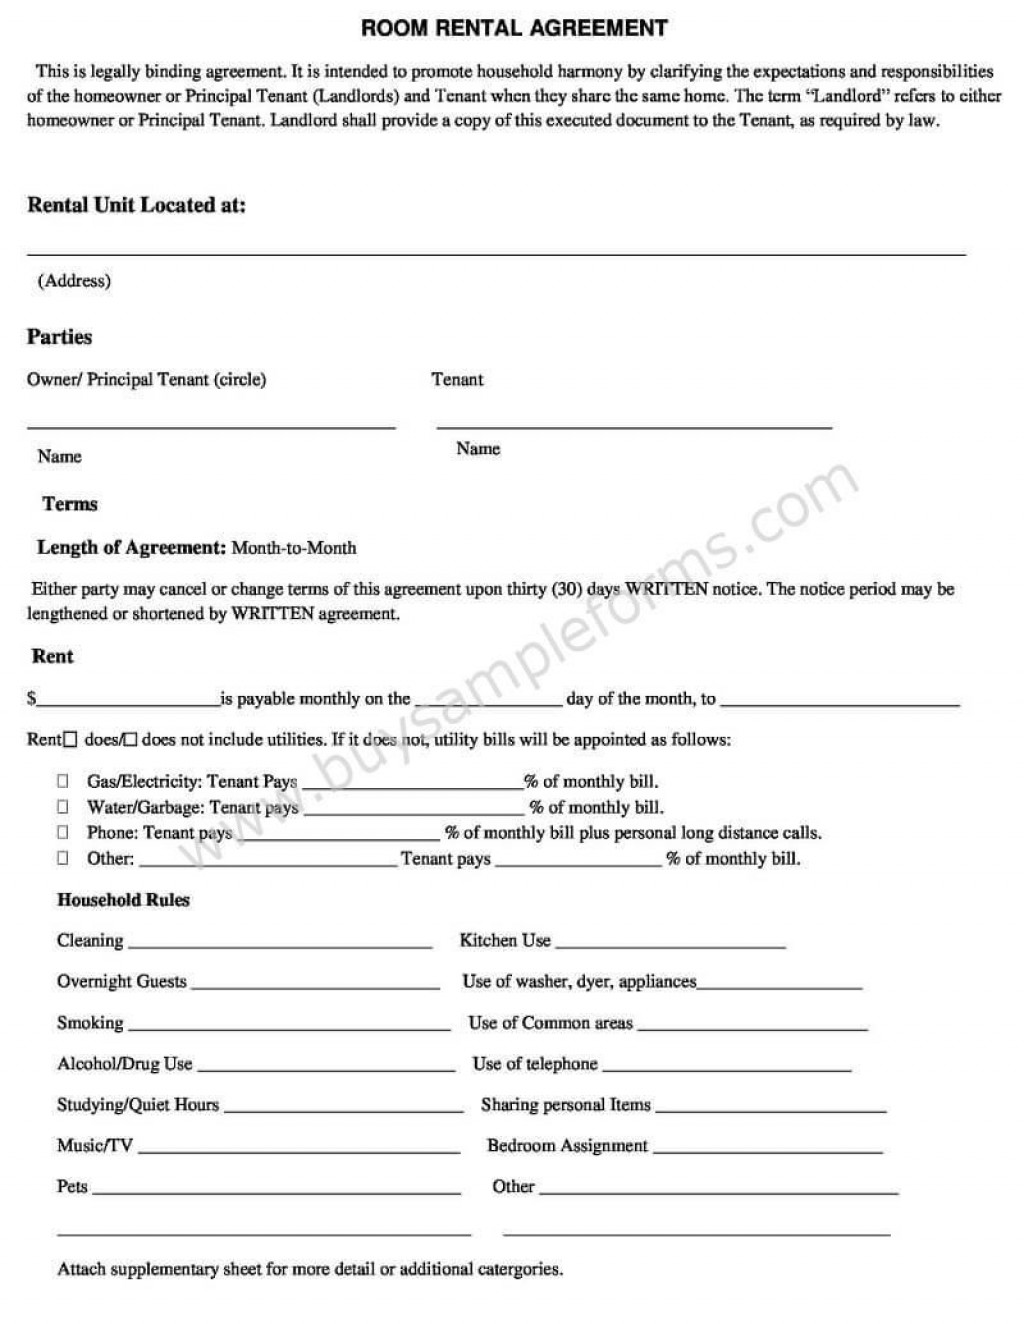 008 Amazing Rent A Room Tenancy Agreement Template Free High Def  Rental Simple Form Word DocLarge